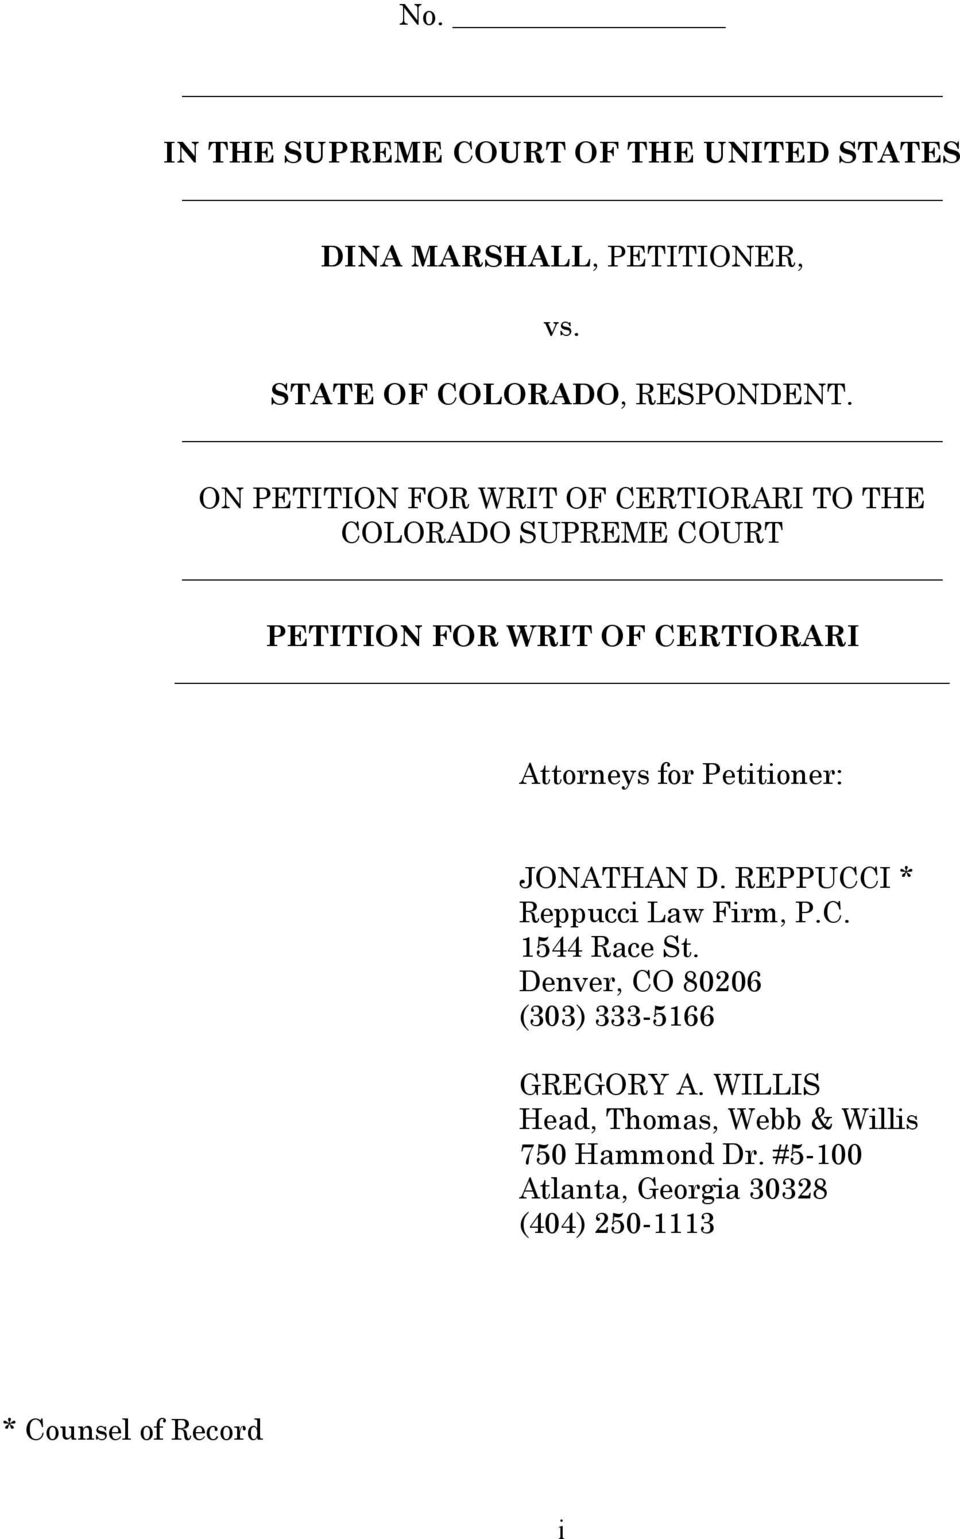 Petitioner: JONATHAN D. REPPUCCI * Reppucci Law Firm, P.C. 1544 Race St.